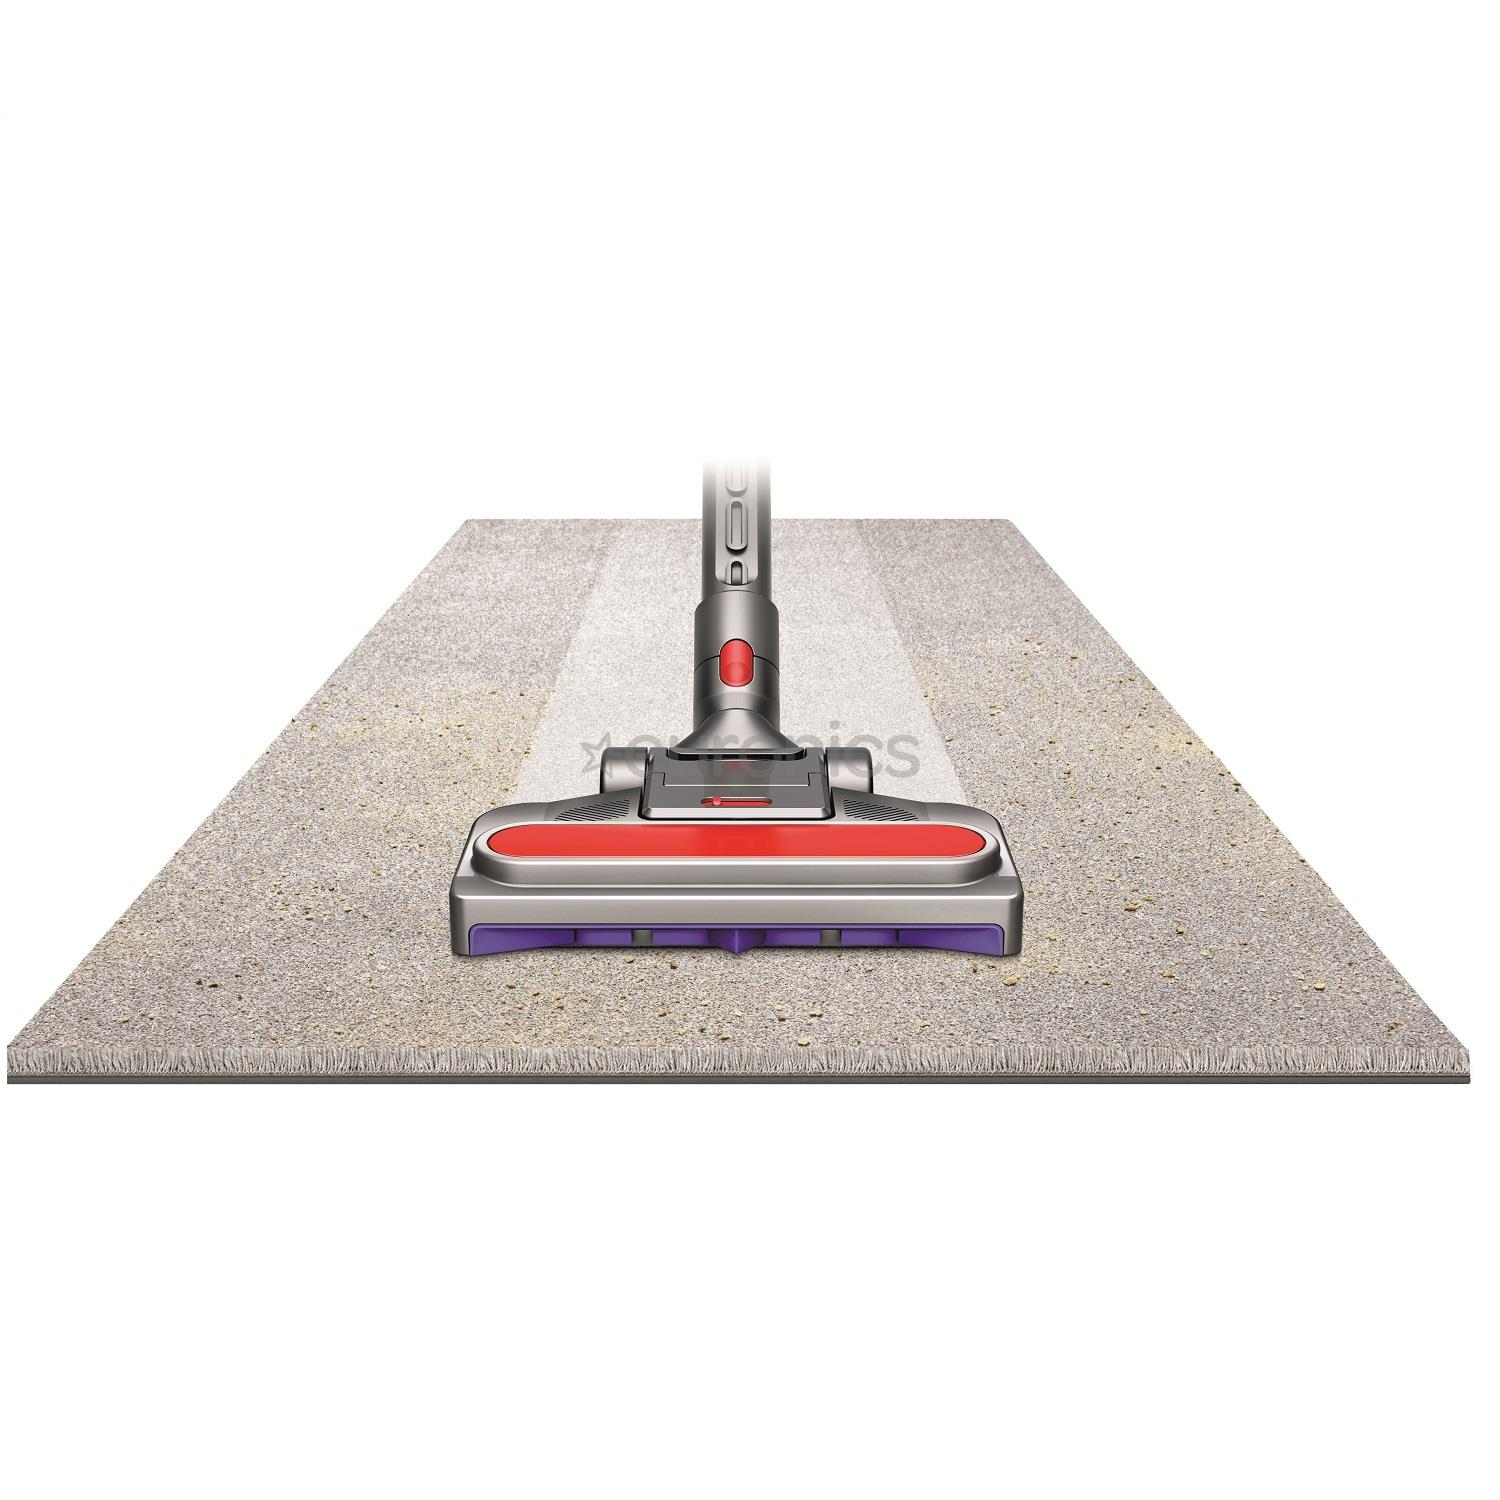 Dyson tile floor cleaner gallery tile flooring design ideas dyson tile floor cleaner image collections tile flooring design dyson tile floor cleaner choice image tile doublecrazyfo Gallery